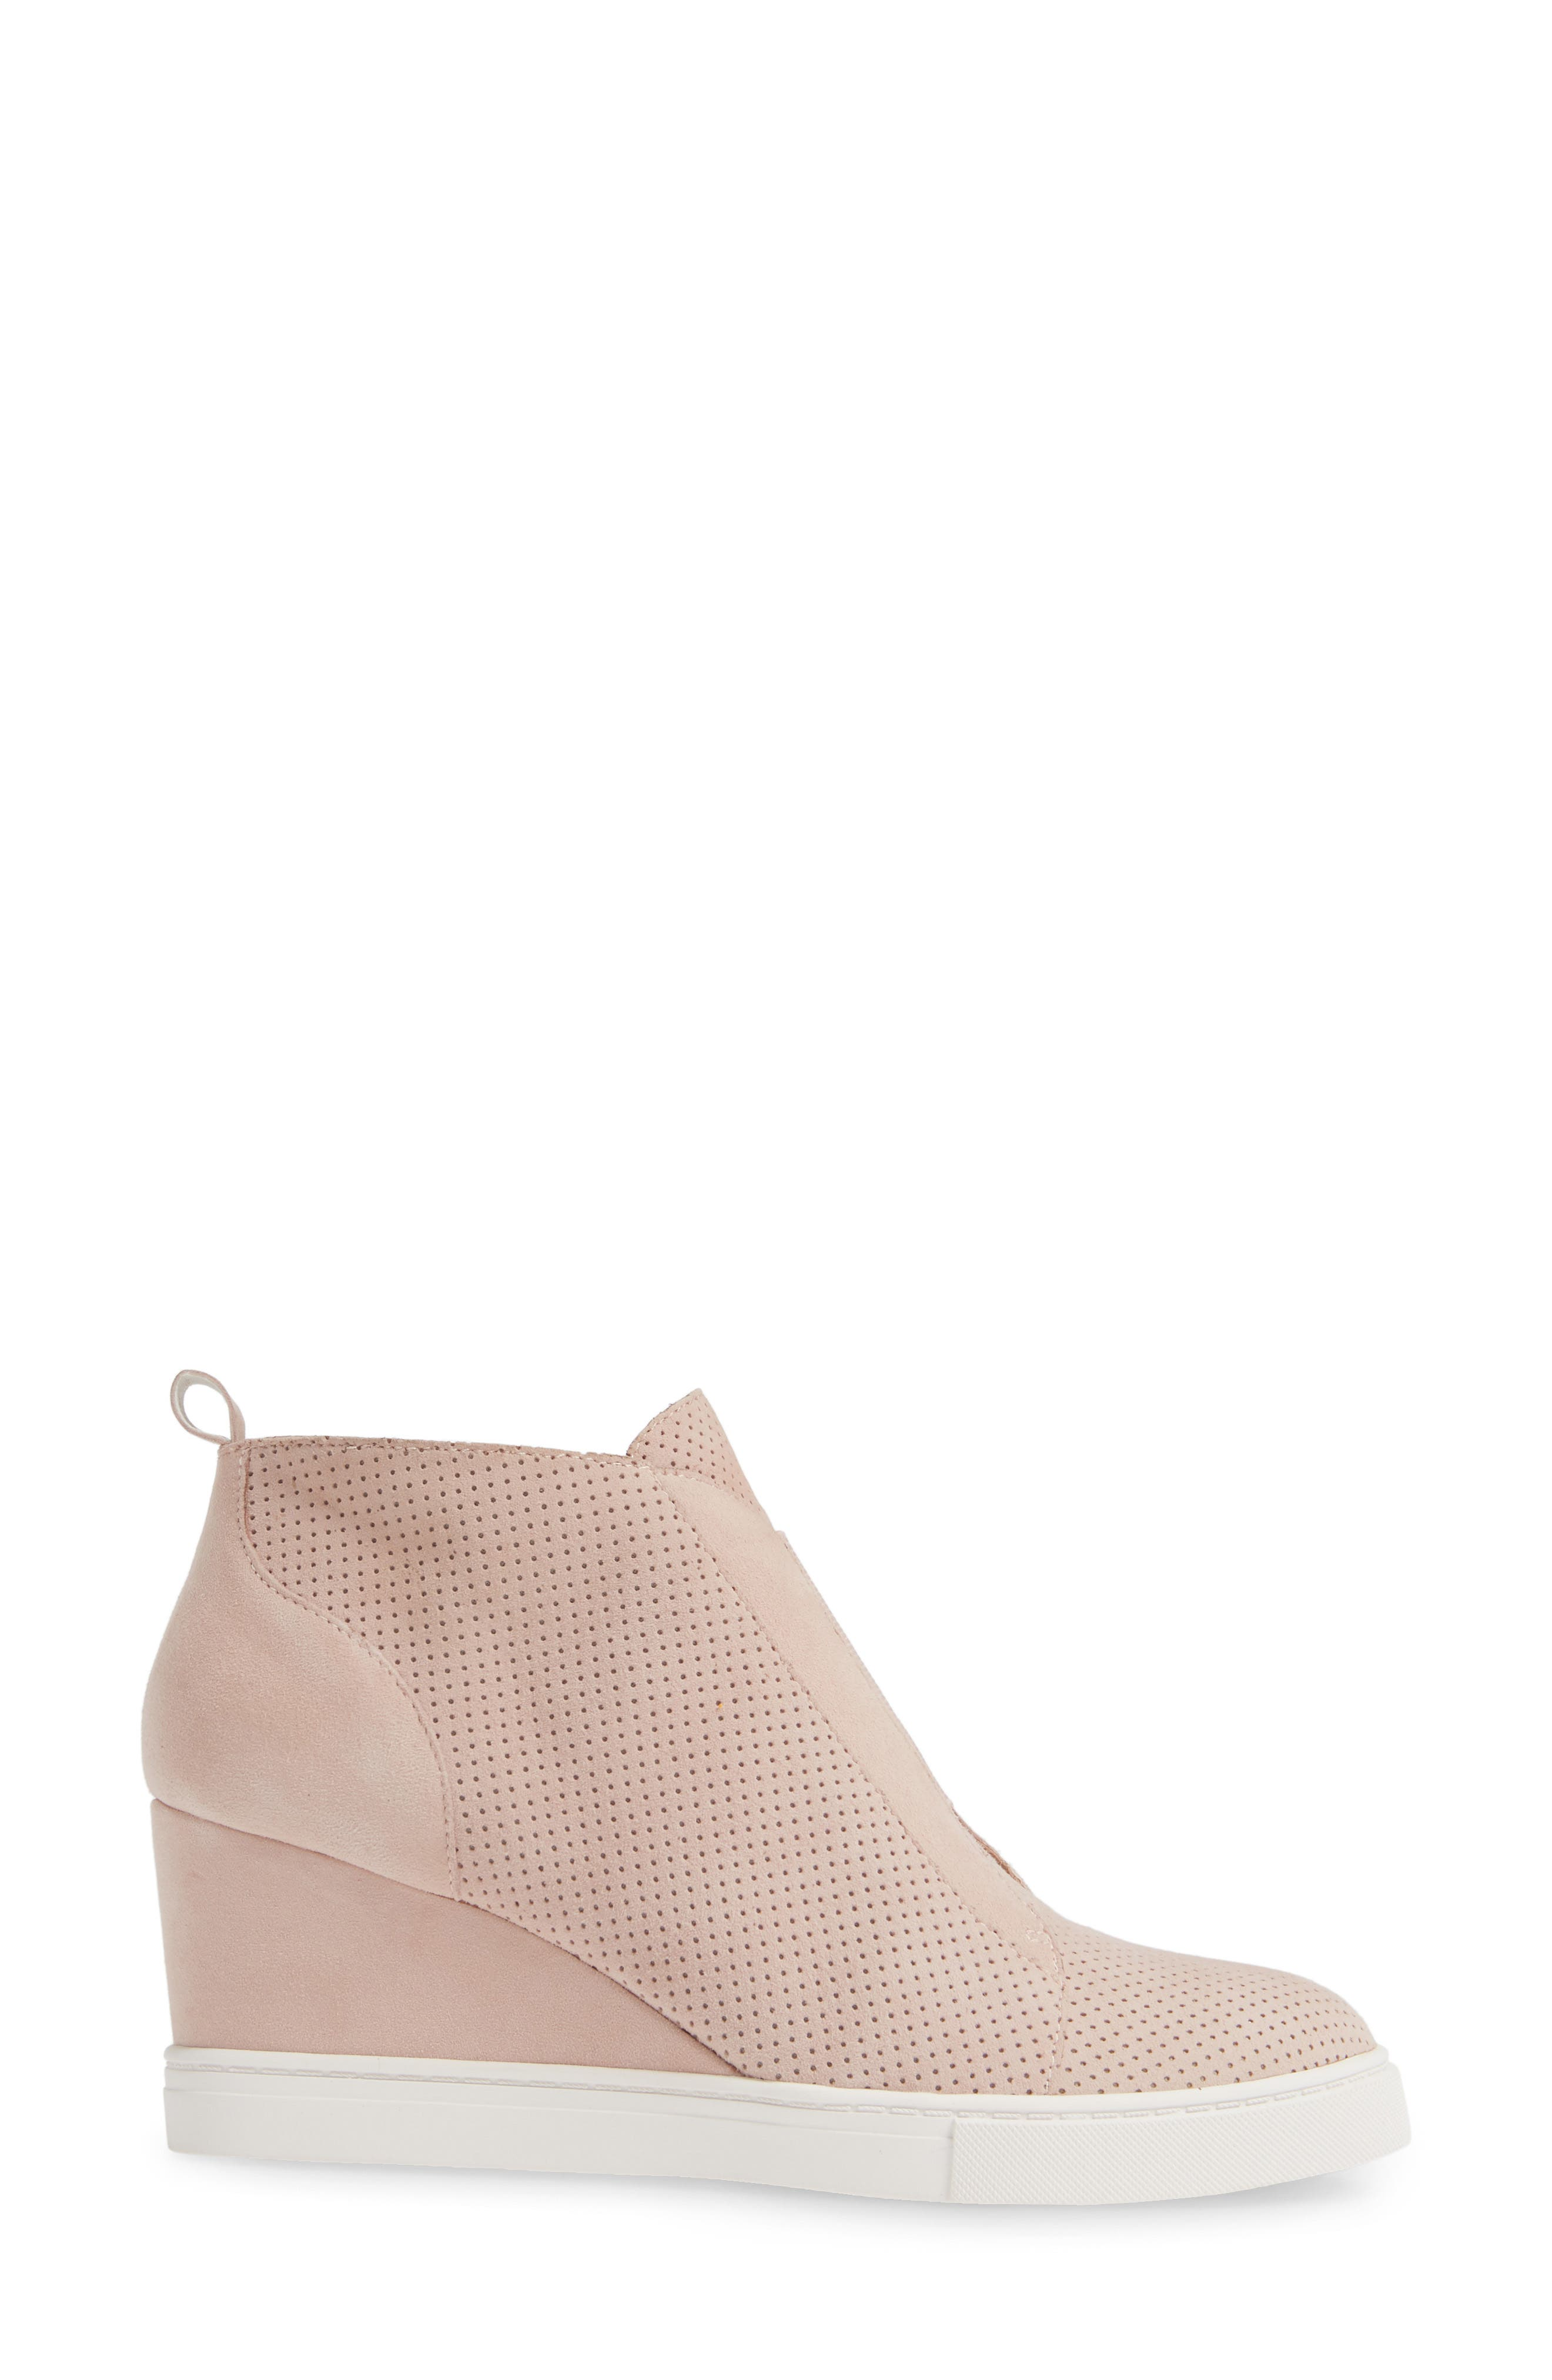 Felicia Wedge Bootie,                             Alternate thumbnail 3, color,                             BLUSH PERFORATED SUEDE